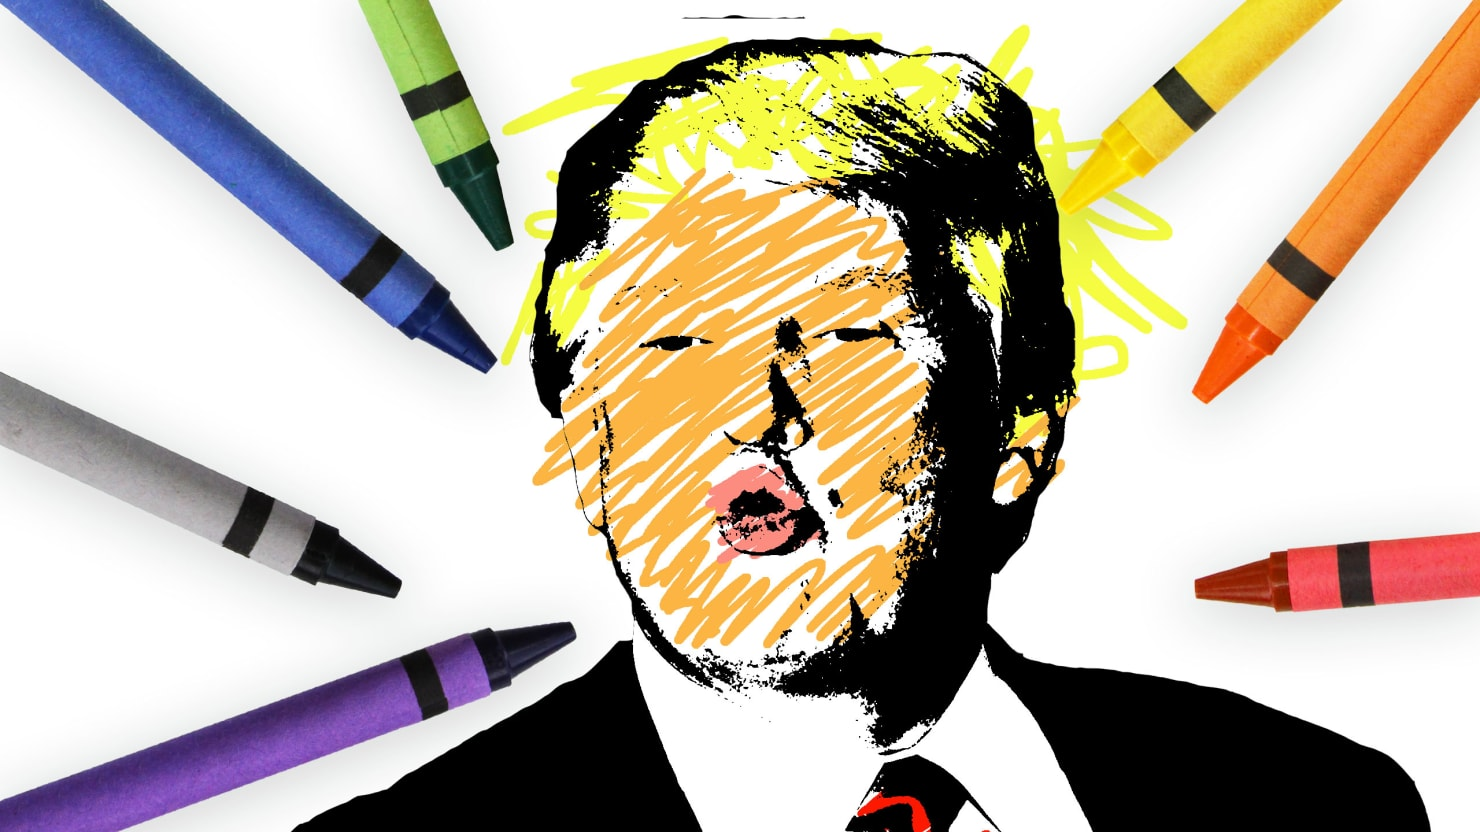 Elite Campuses Offer Students Coloring Books, Puppies to Get Over Trump